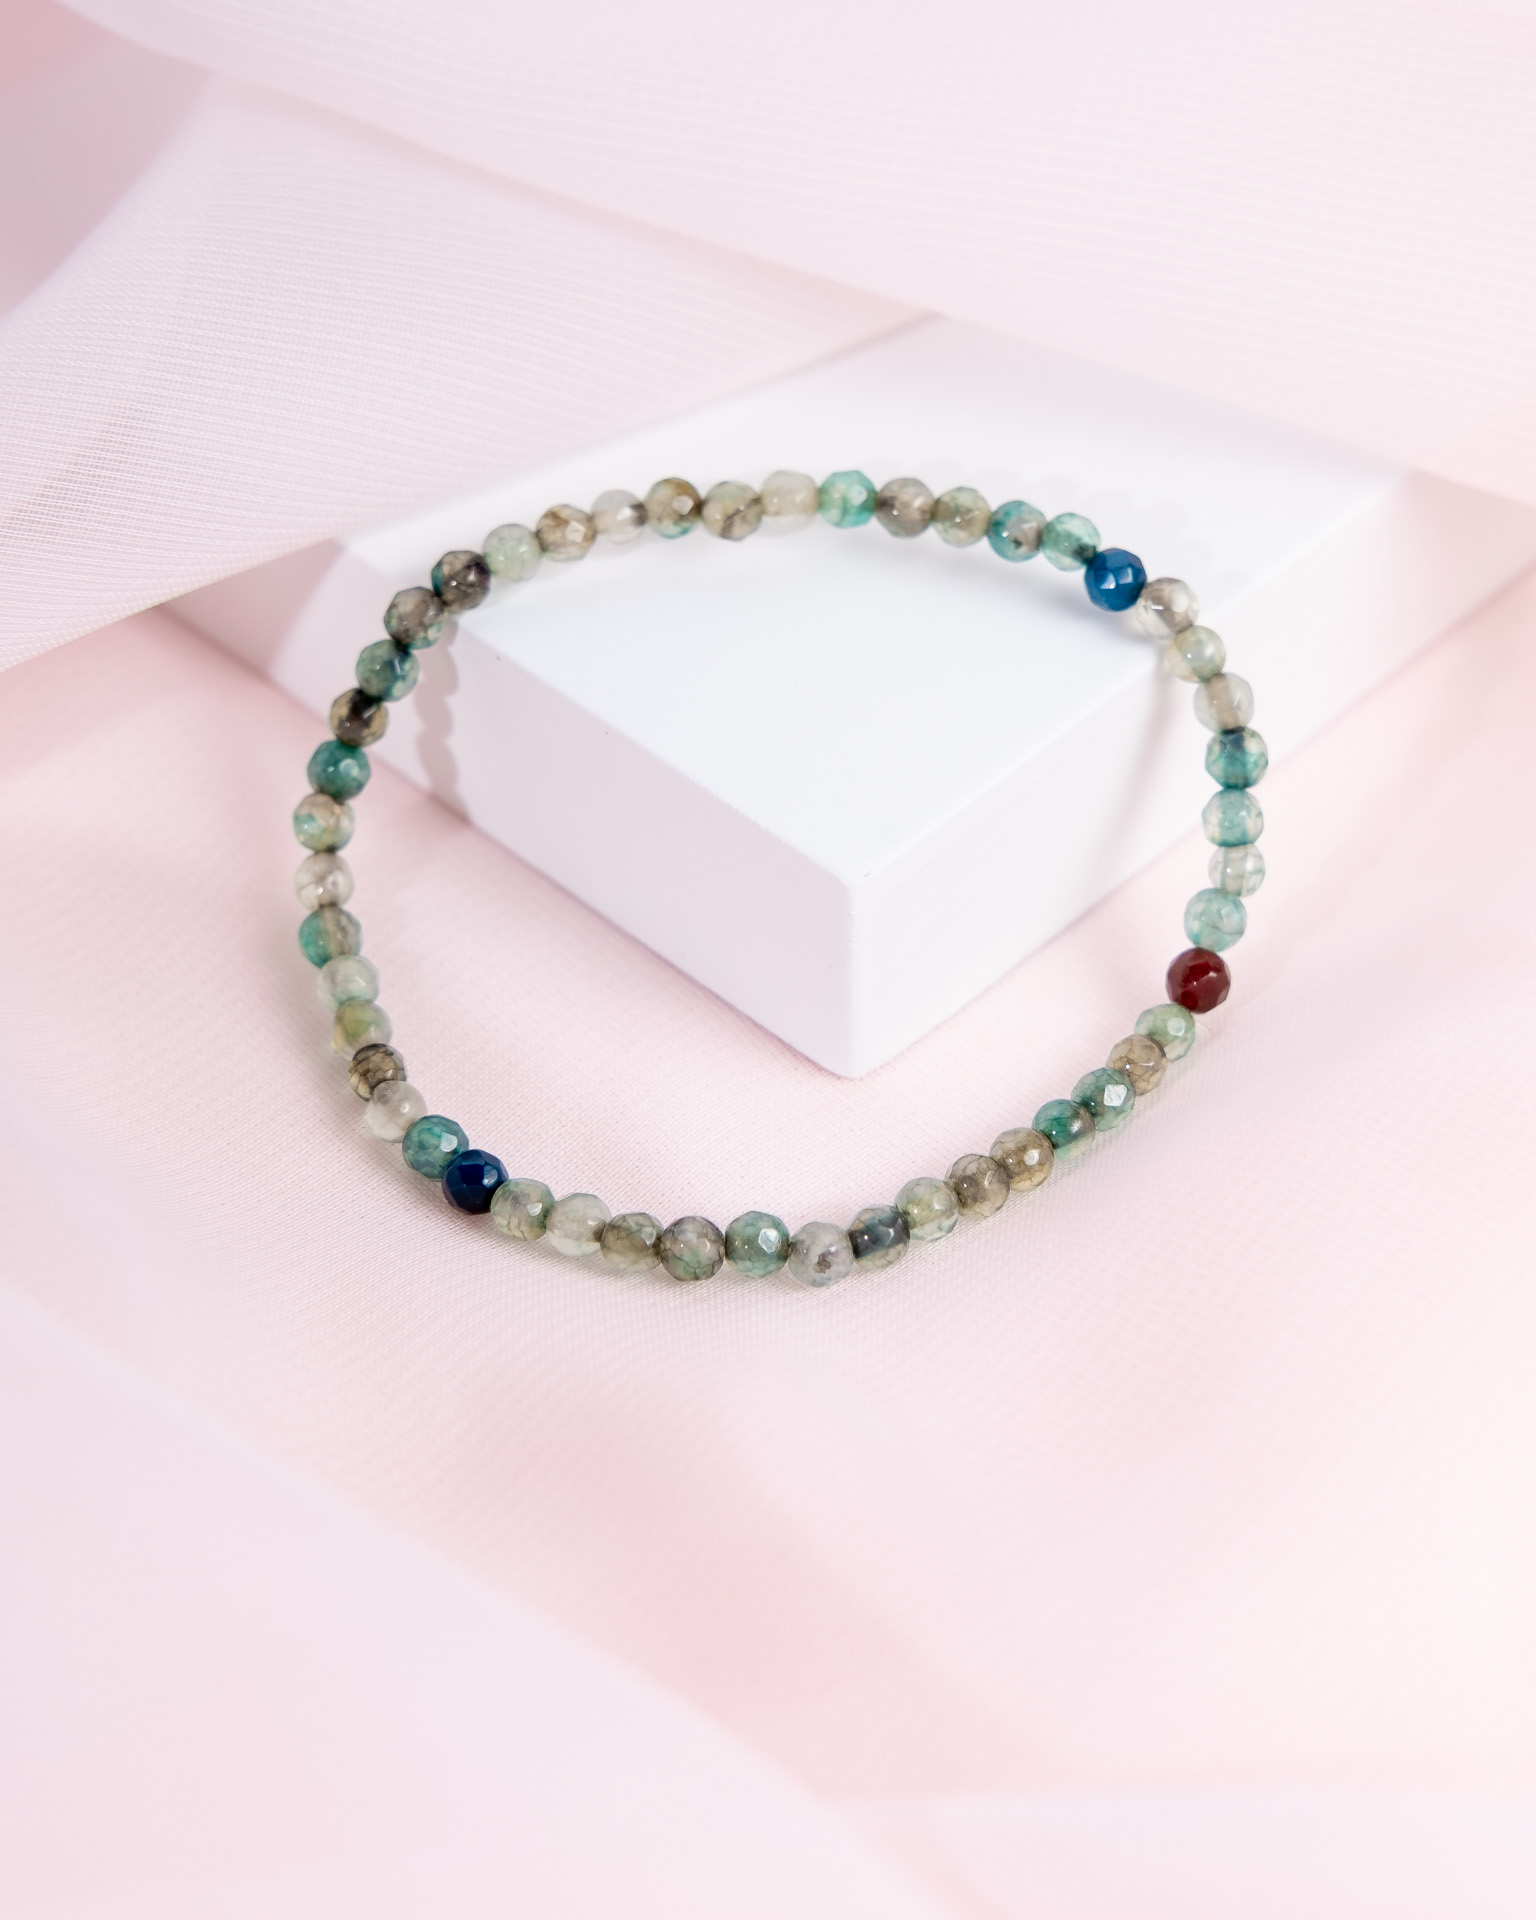 Handcrafted Blue-Green Genuine Onyx Bracelet from India